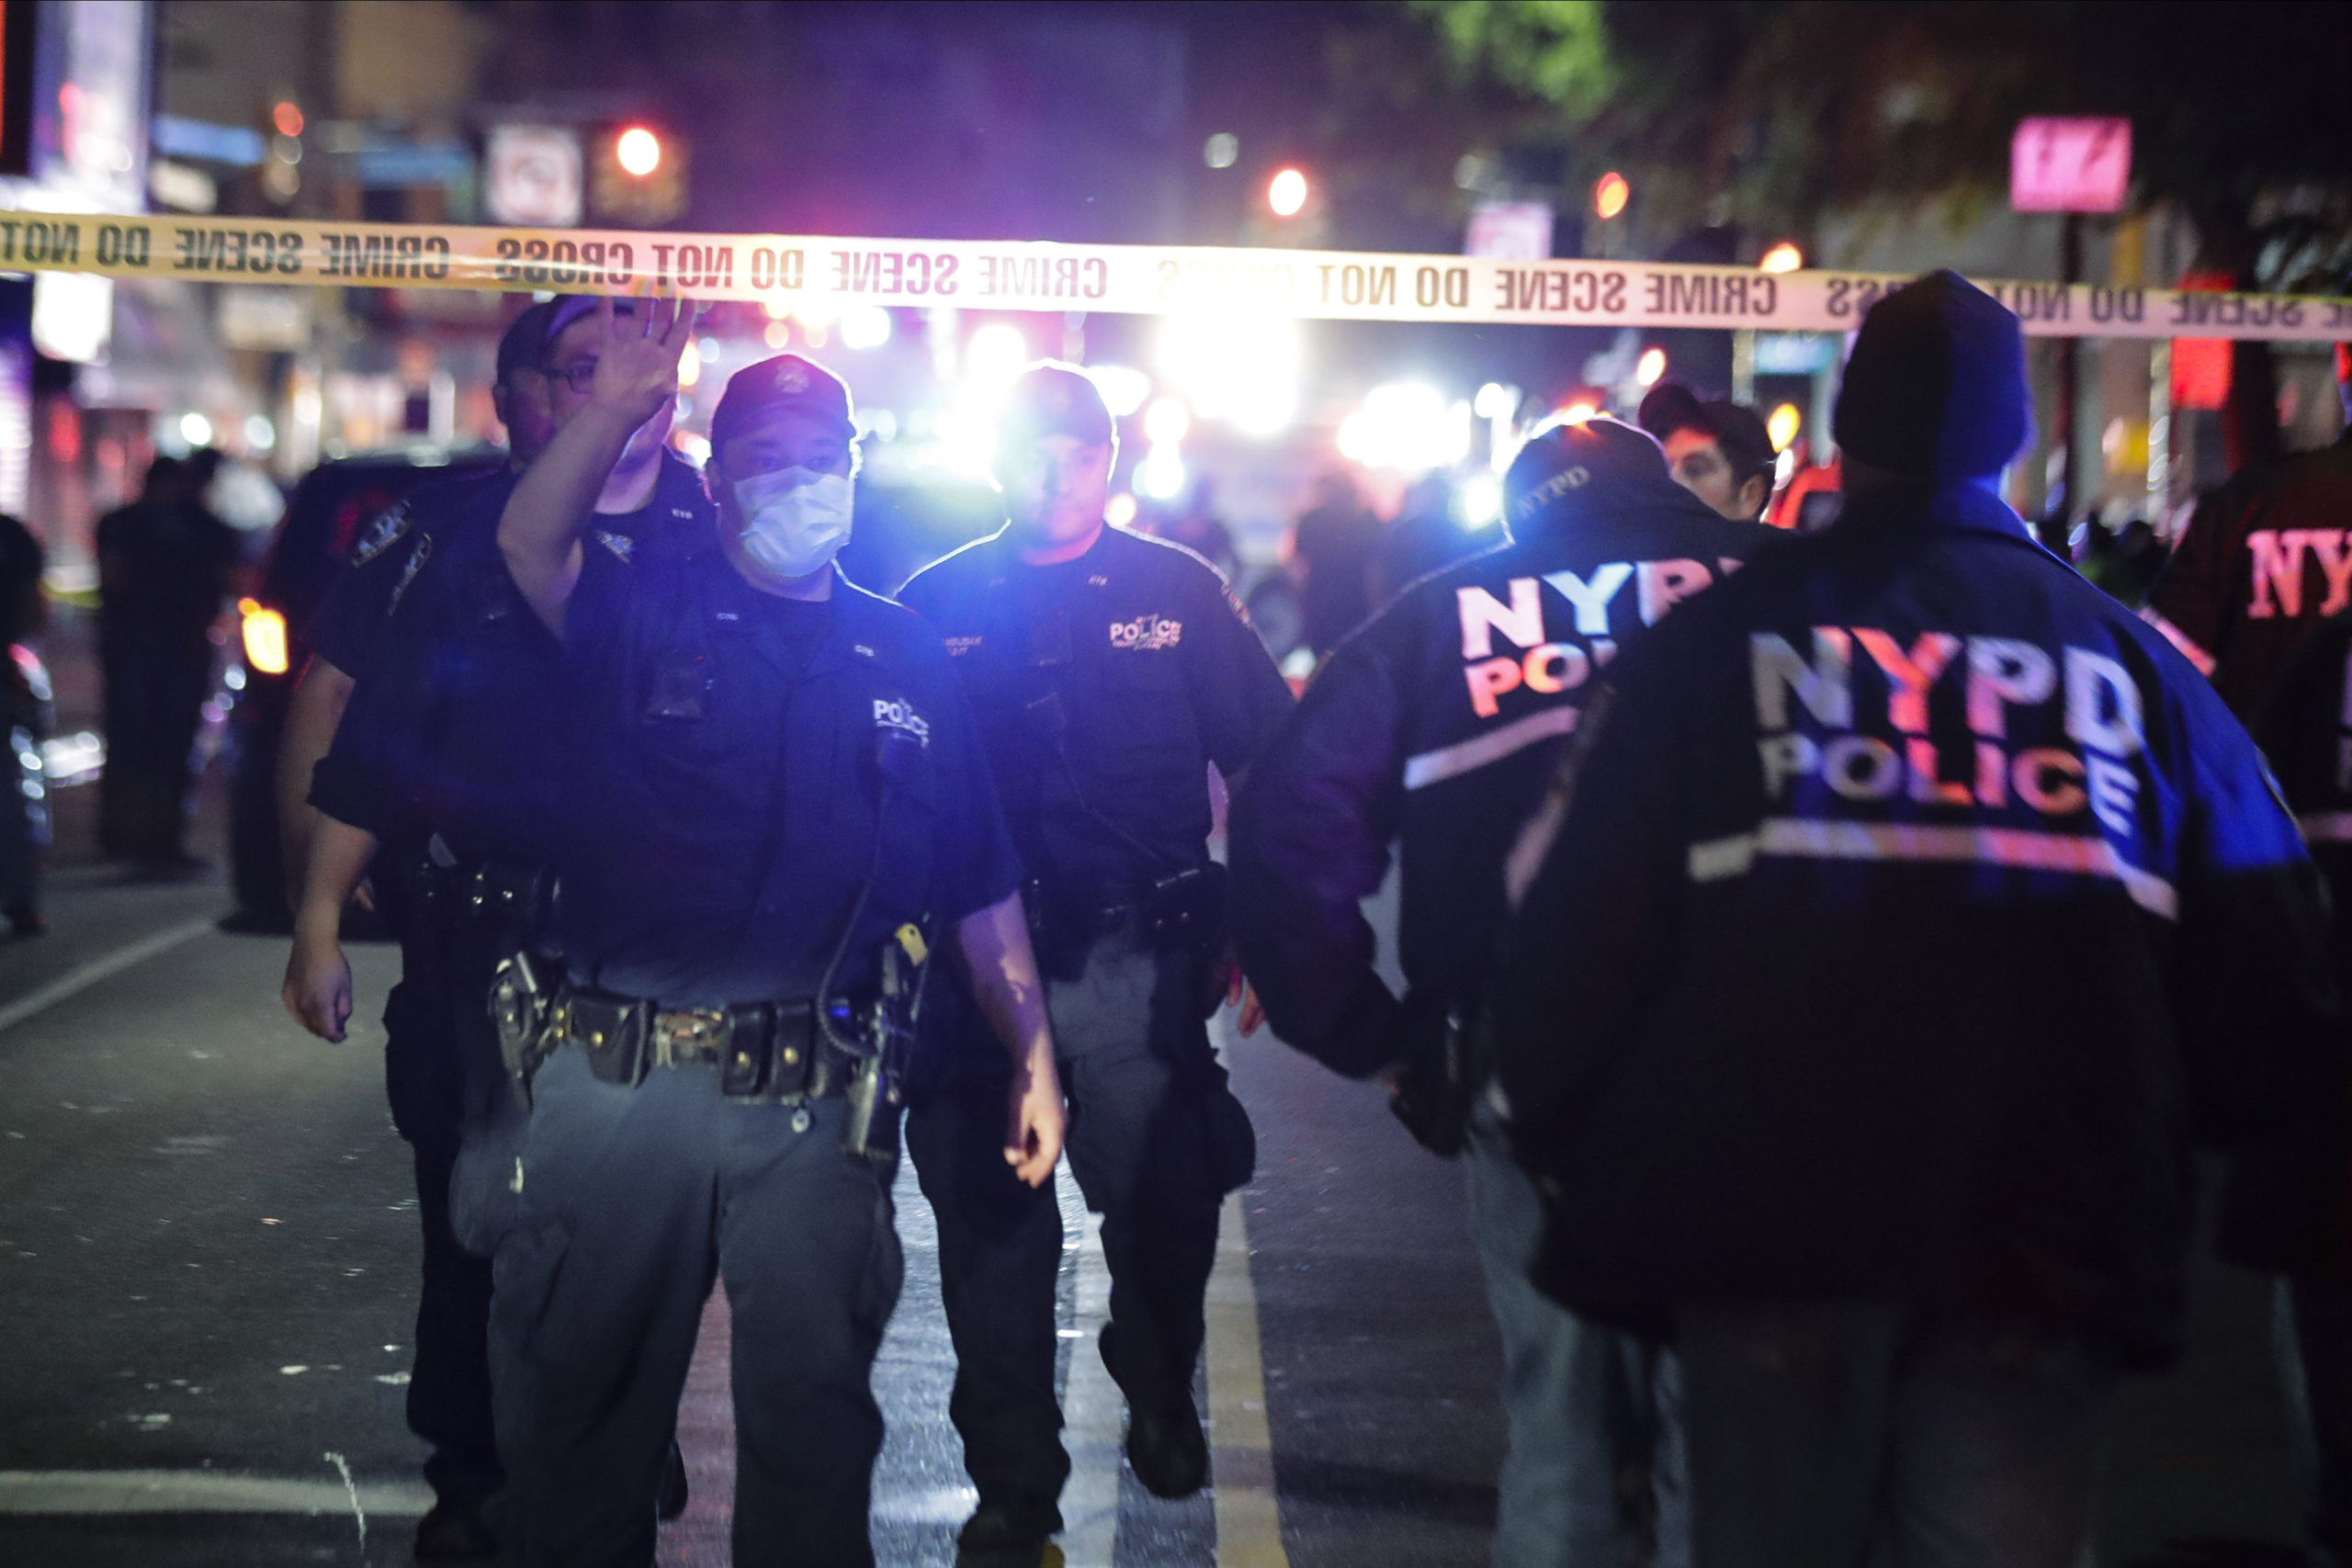 NYPD Officer Stabbed in the Neck, Two Other Police Officers in Hospital After Struggle with Knife-Wielding Man